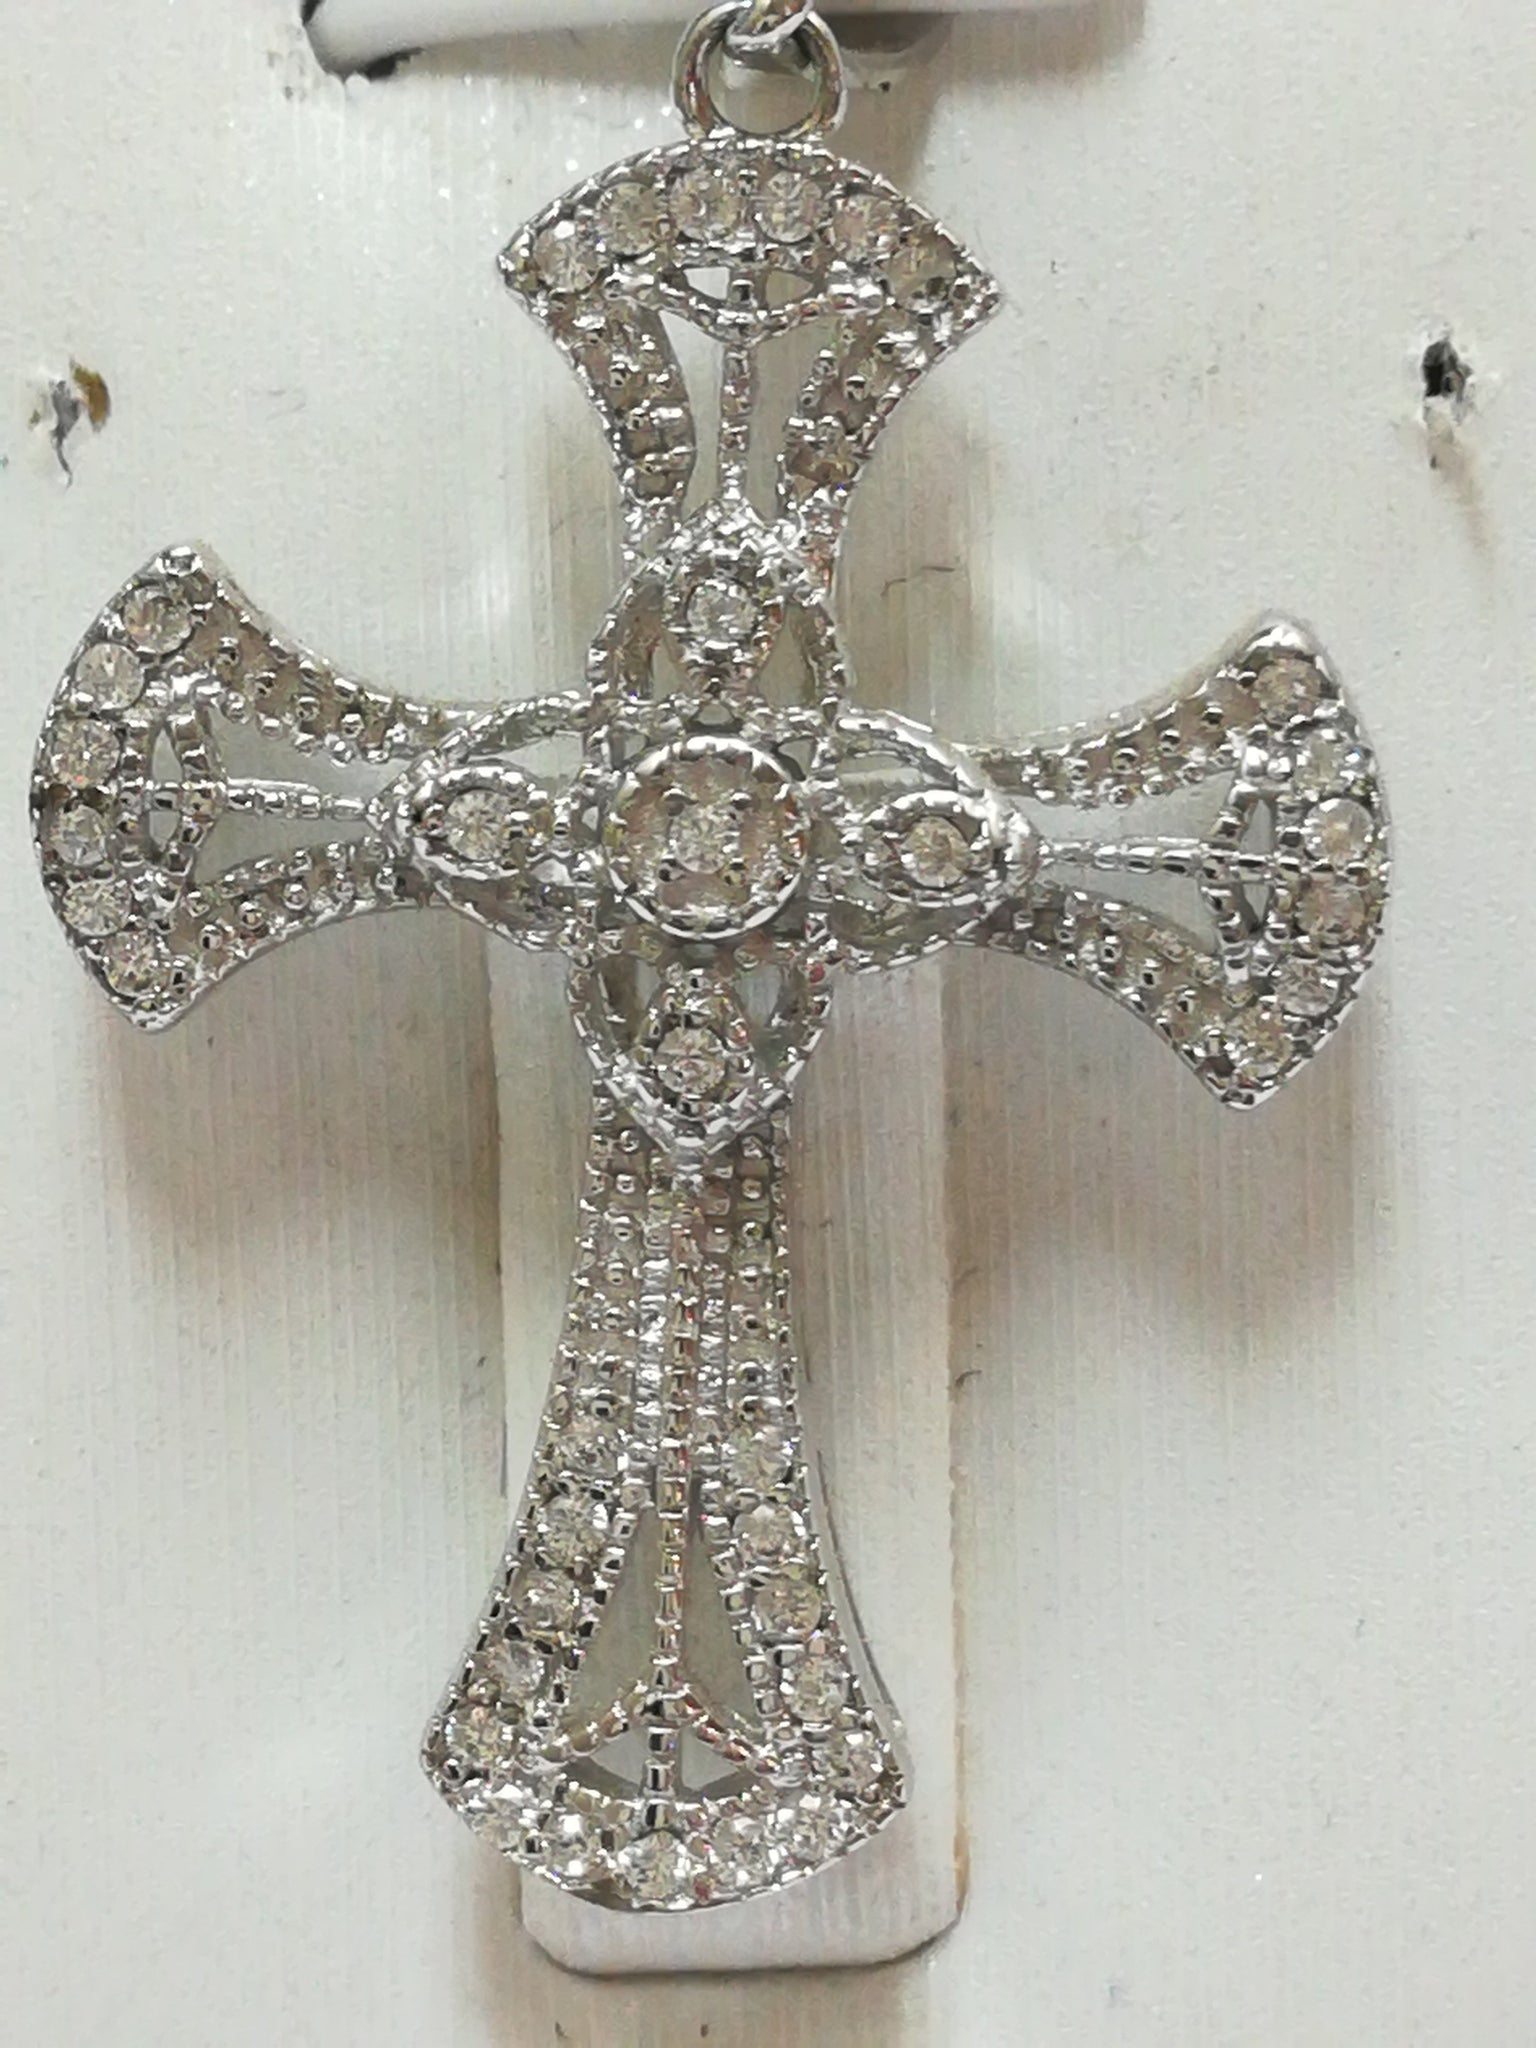 drag two roll limoges over stainless pendant crucifix zoom image steel larger jewelry to tone